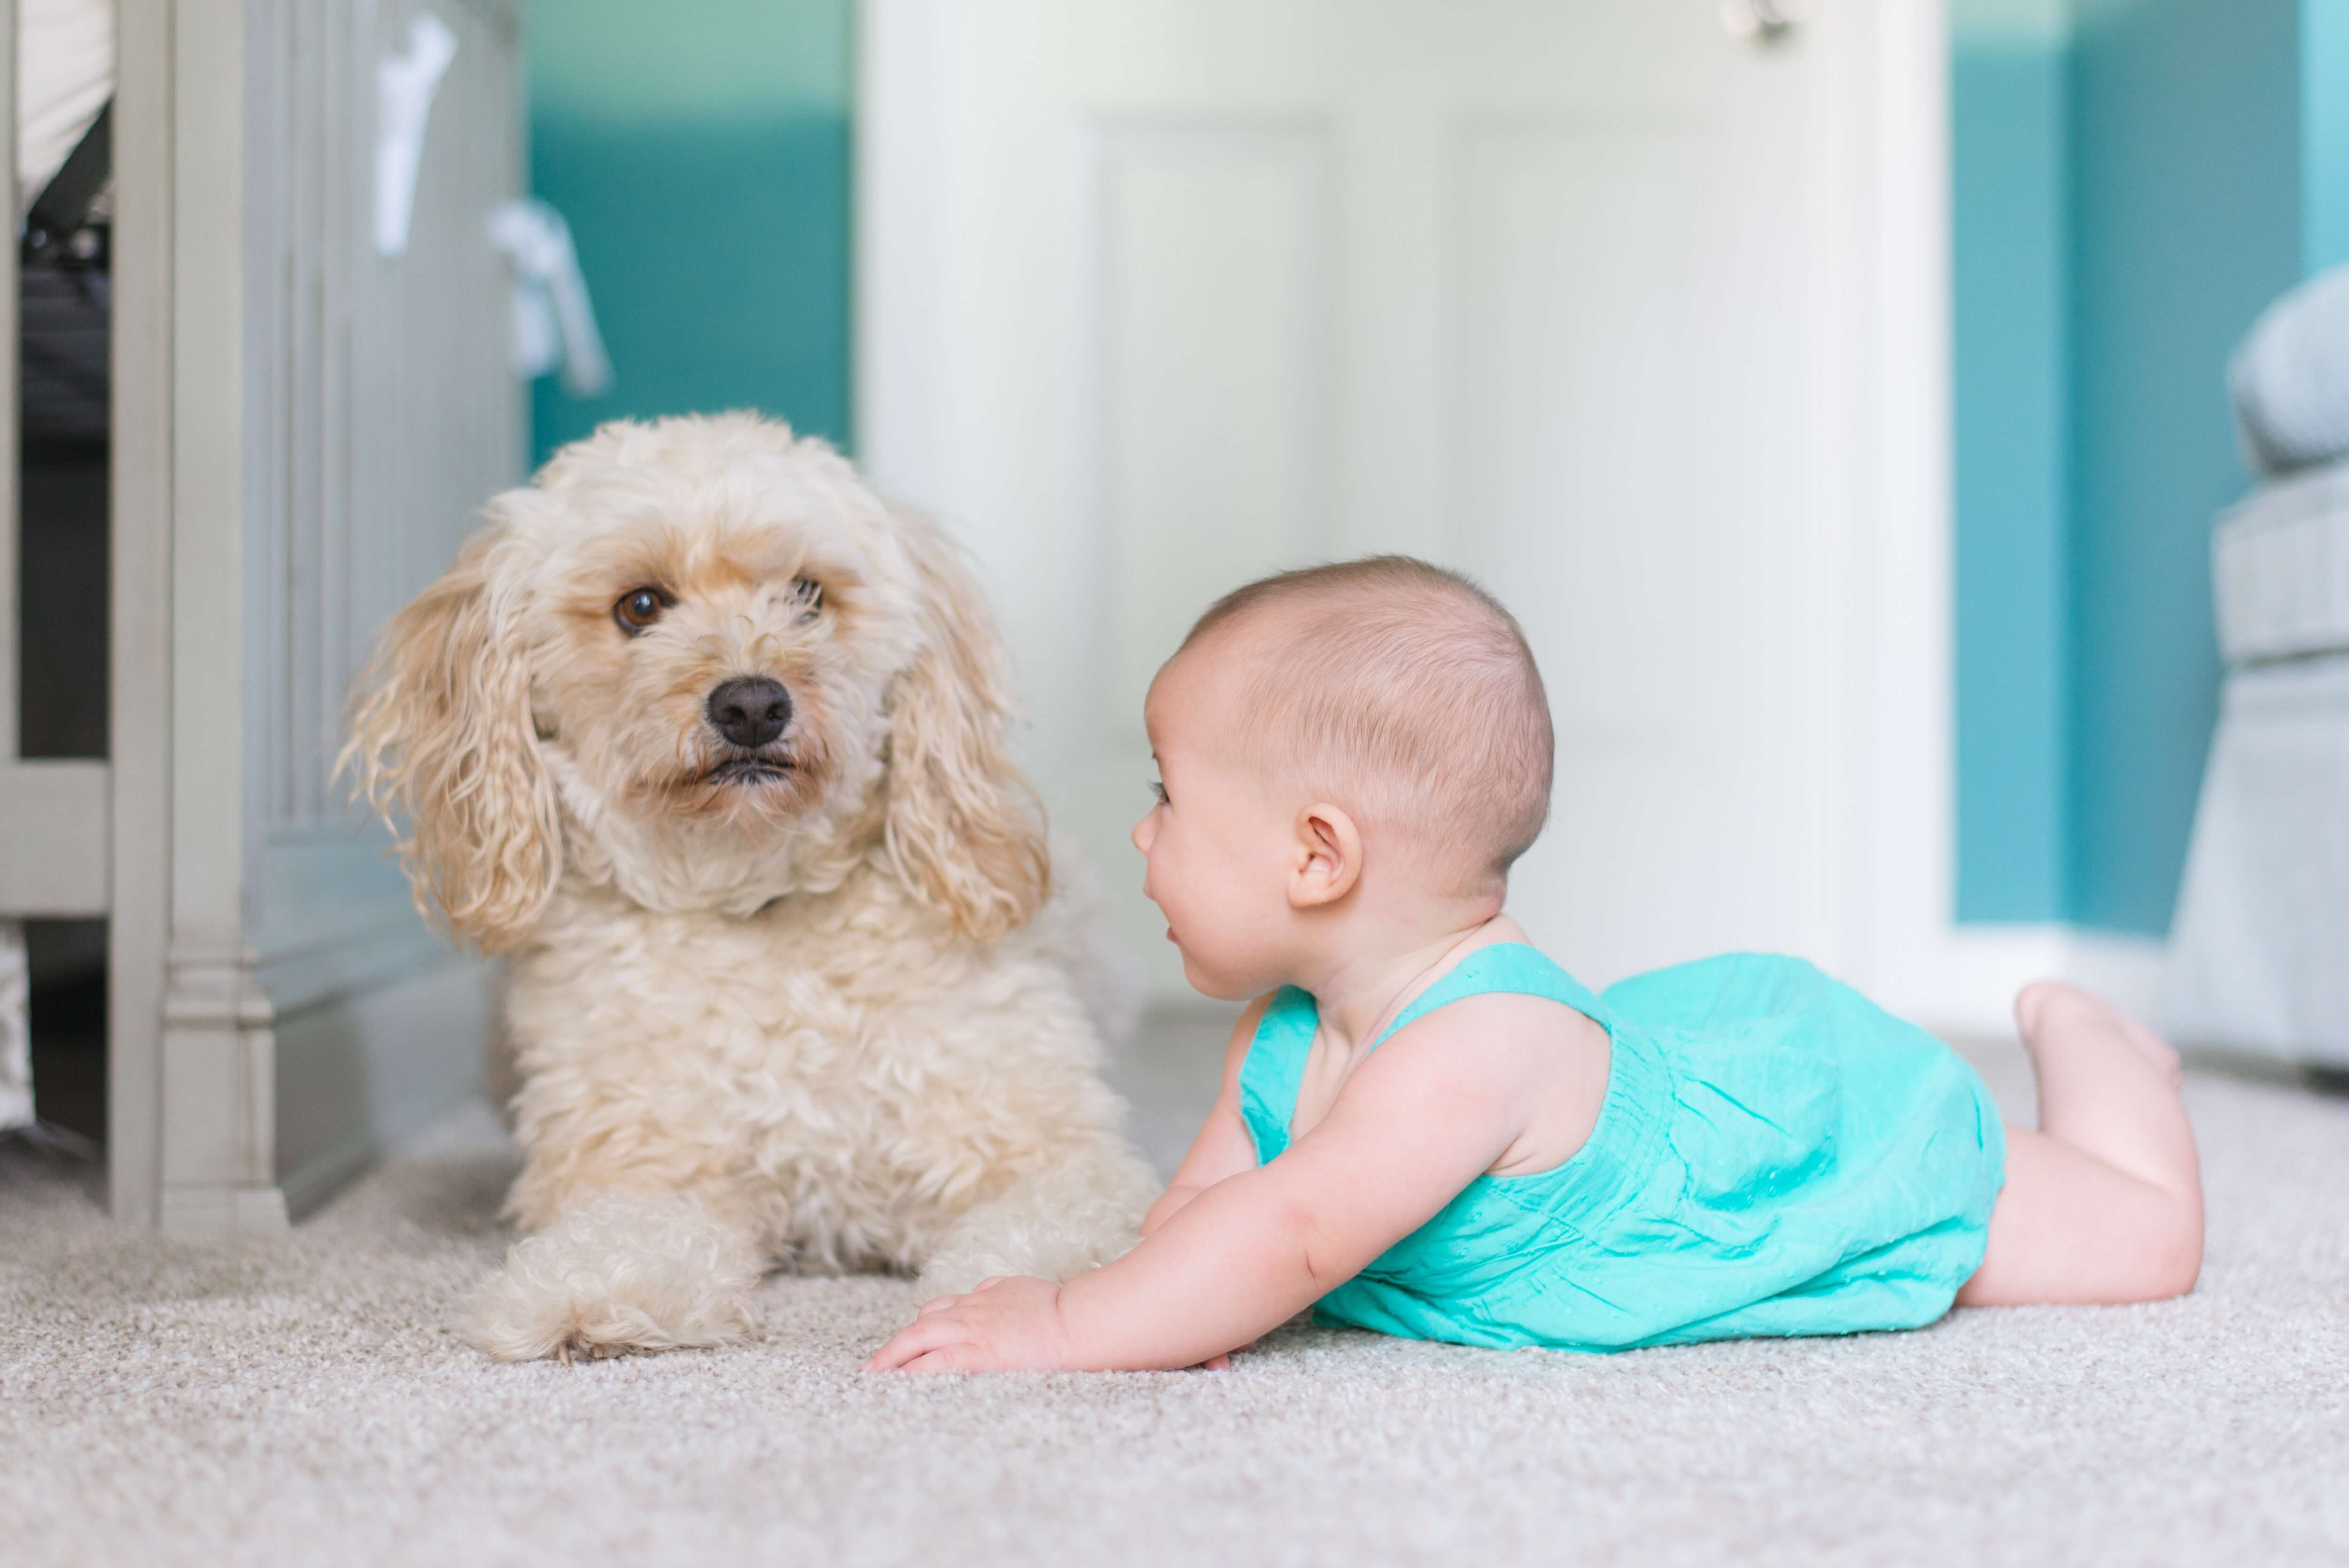 carpets cleaned by chem-dry's pet urine removal treatment in rancho cucamonga